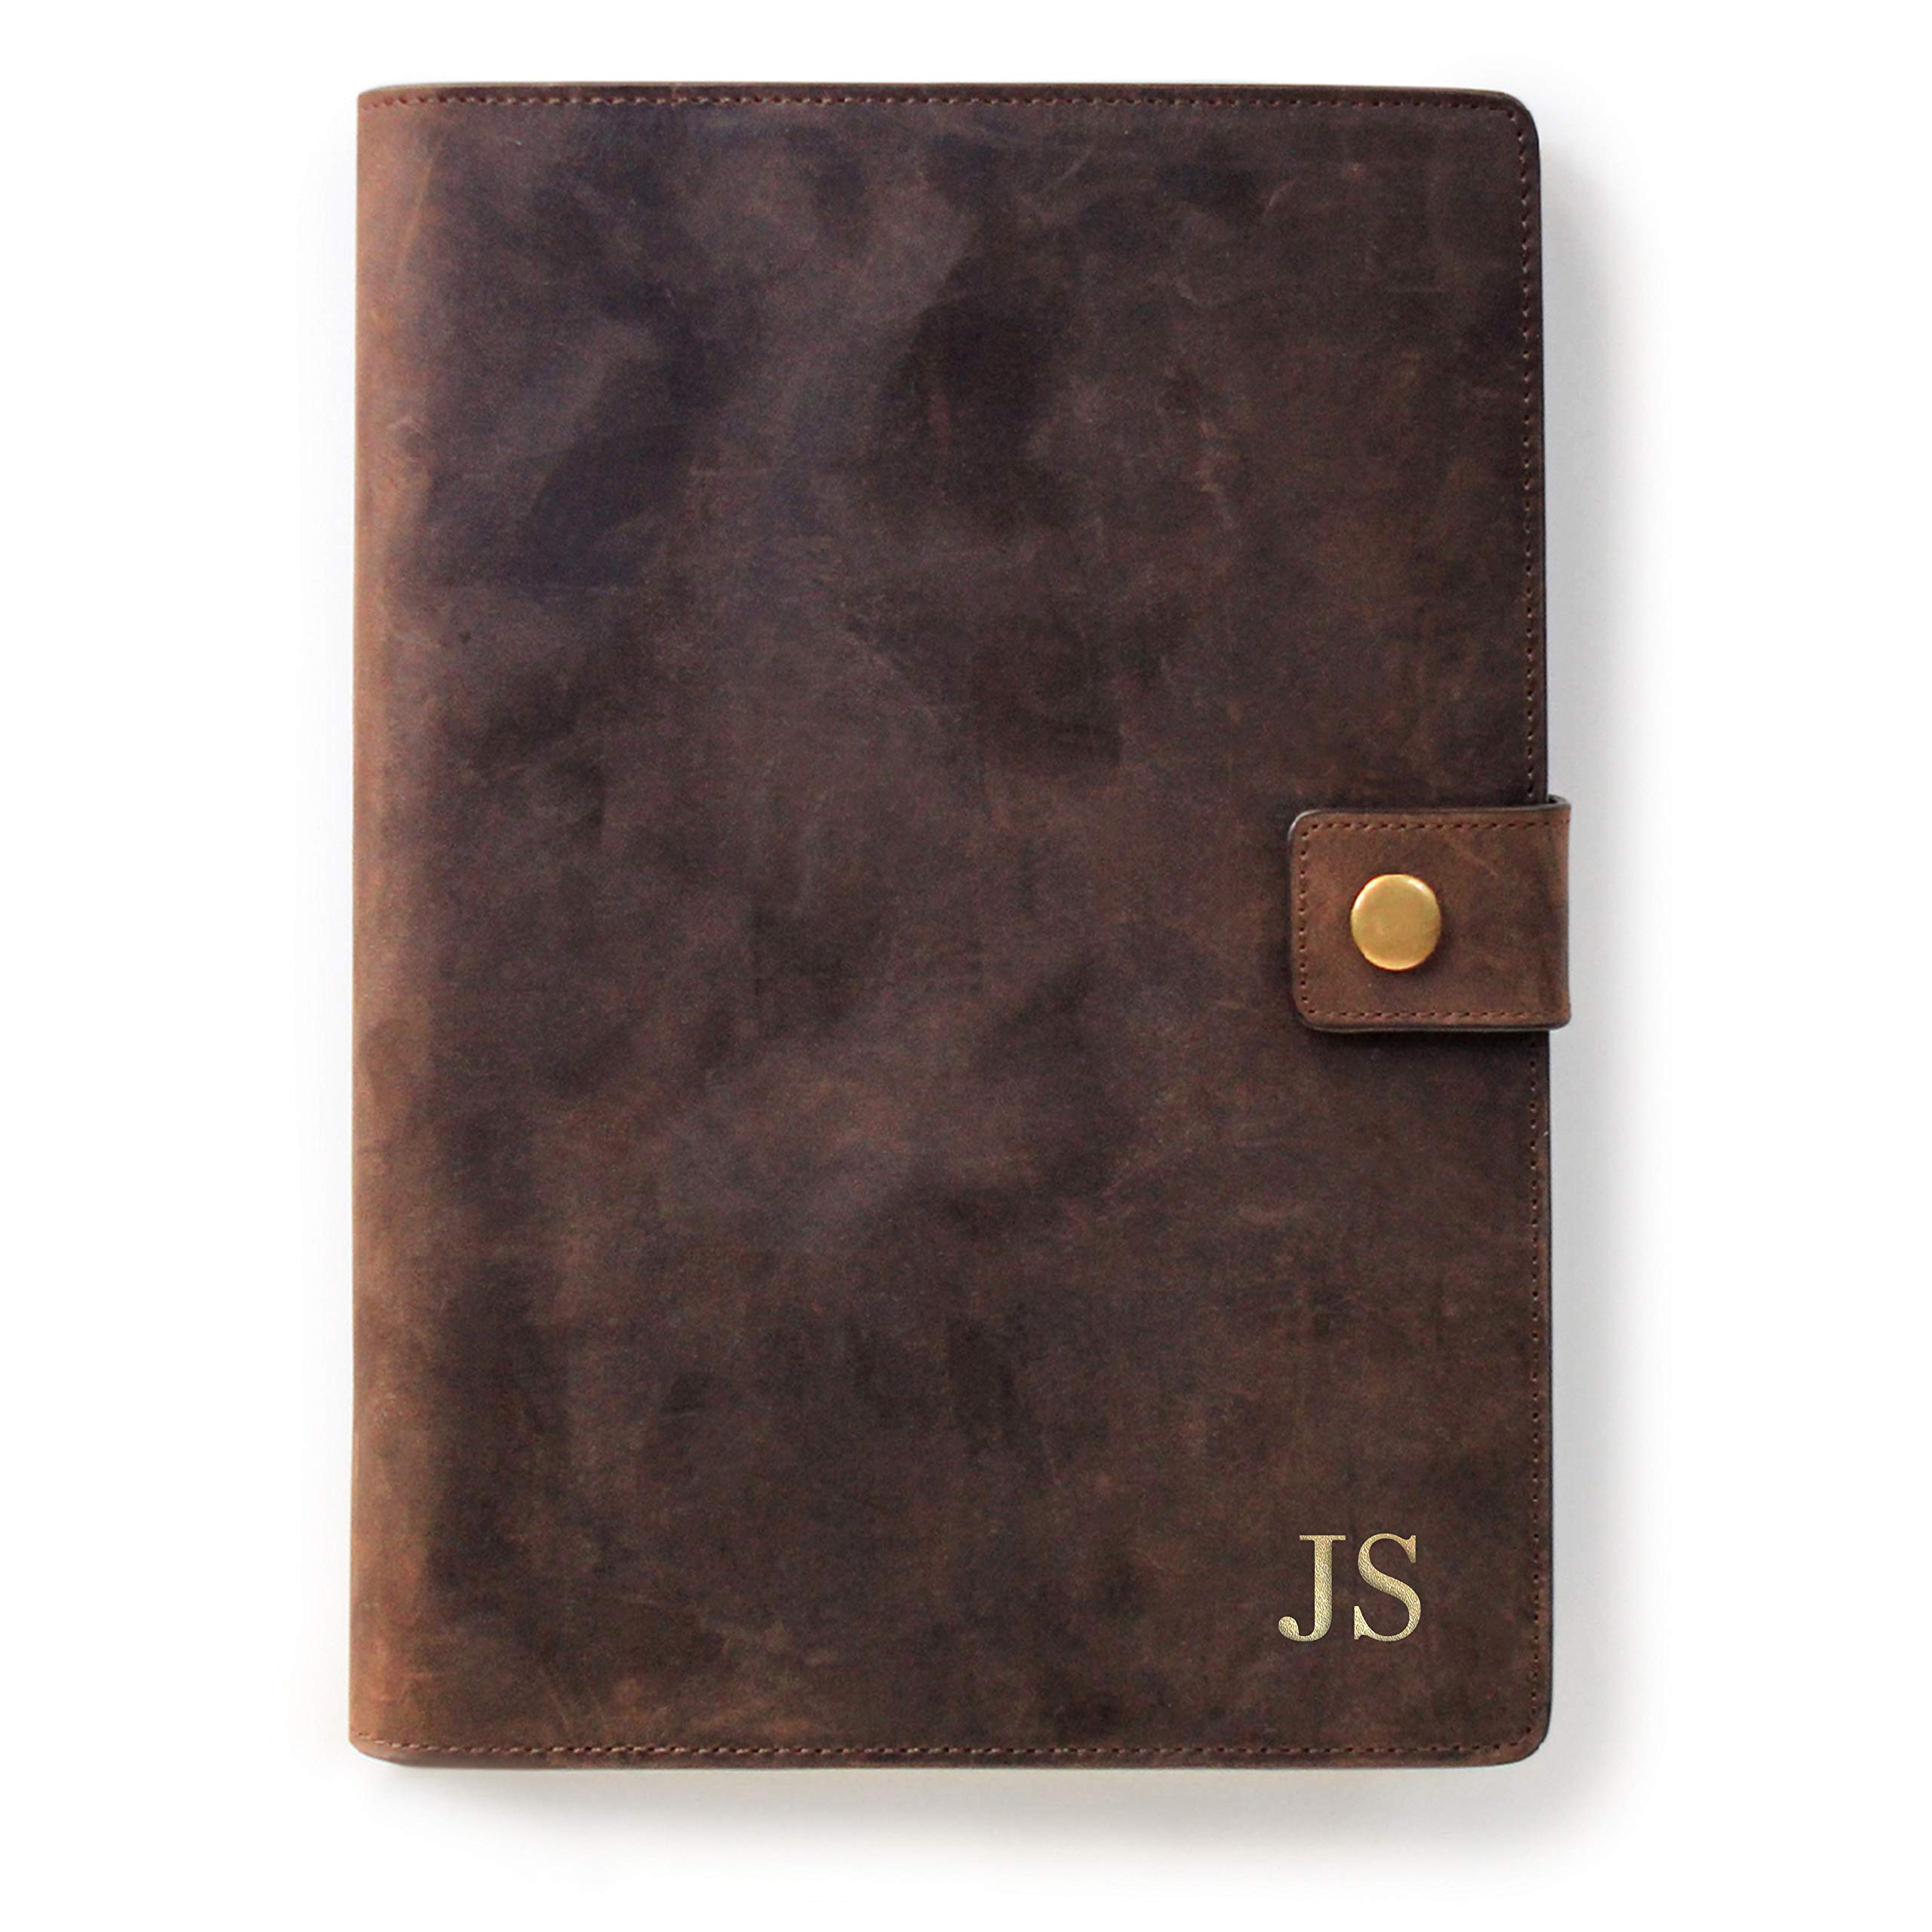 Monogrammed Full Grain Premium Leather Refillable Journal Cover with A5 Lined Notebook, Pen Loop, Card Slots, Brass Snap by Case Elegance